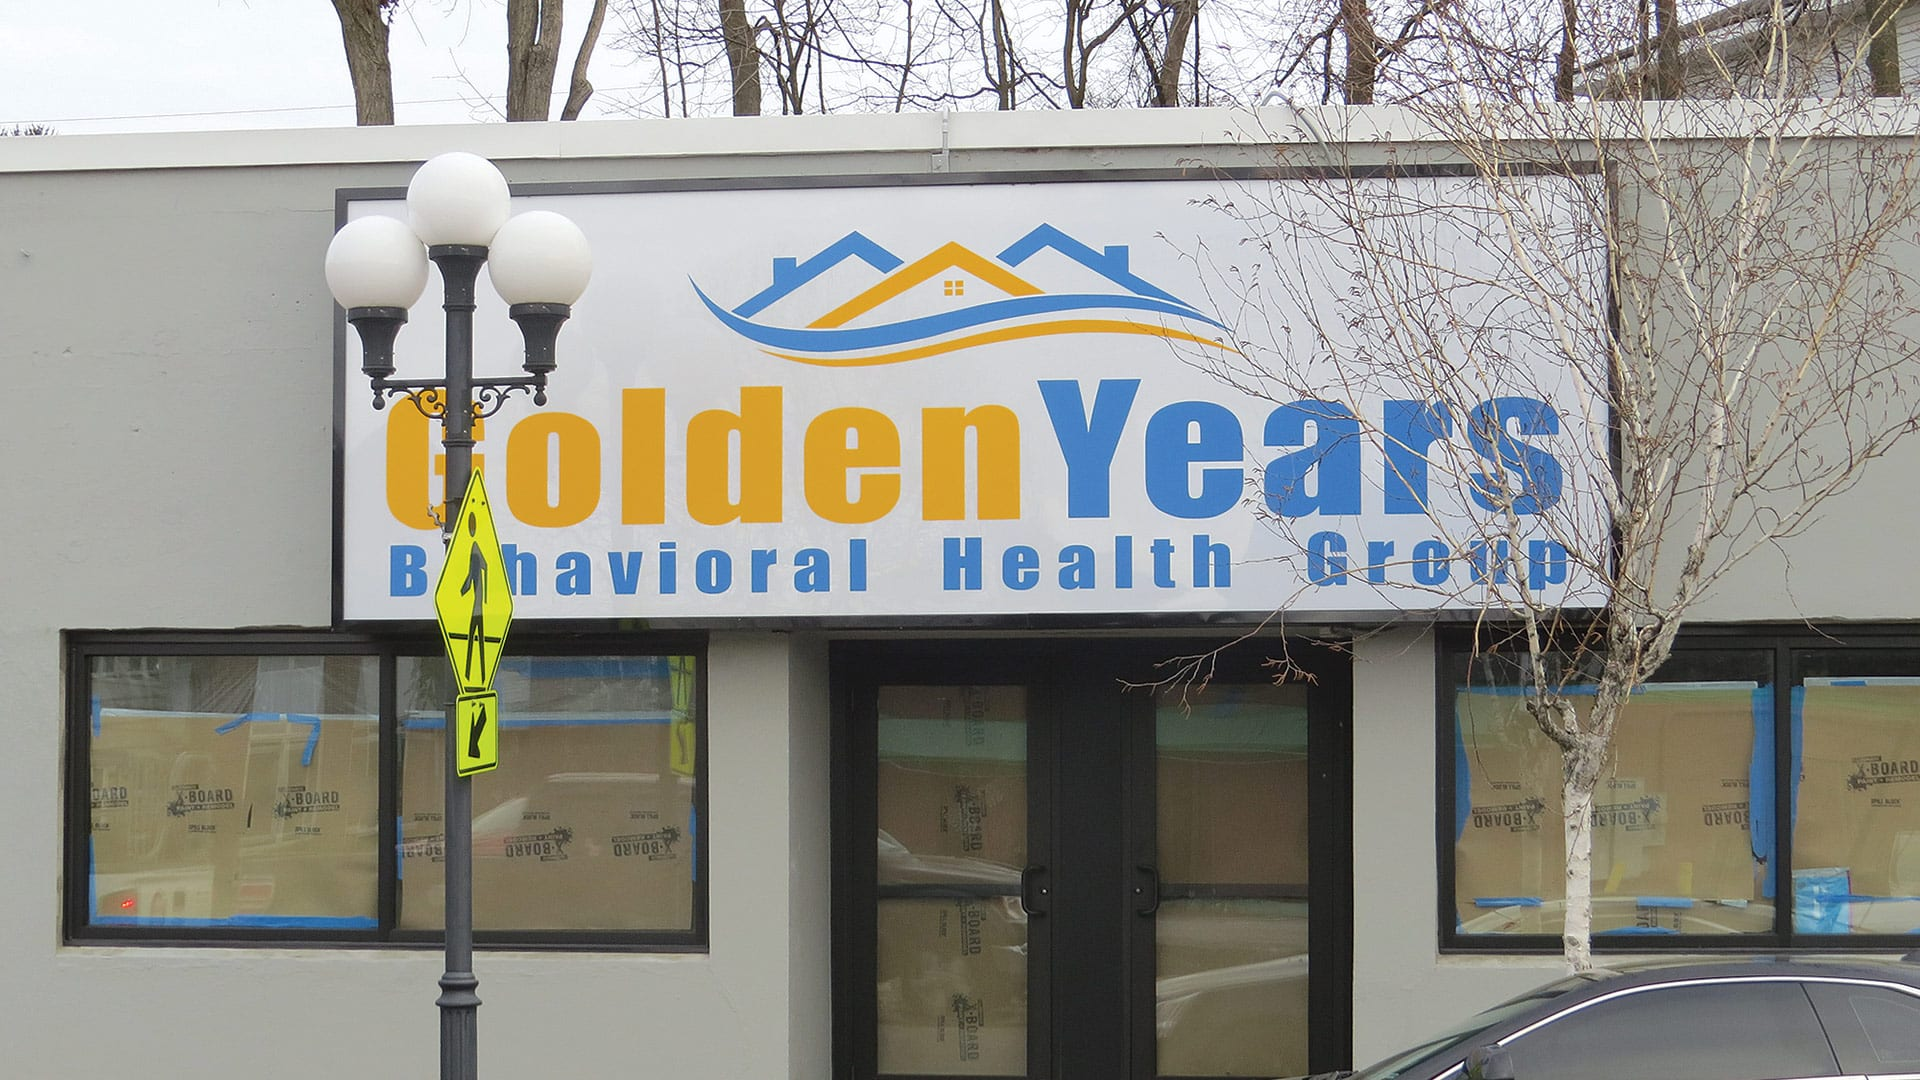 Golden Years Behavioral Health Group